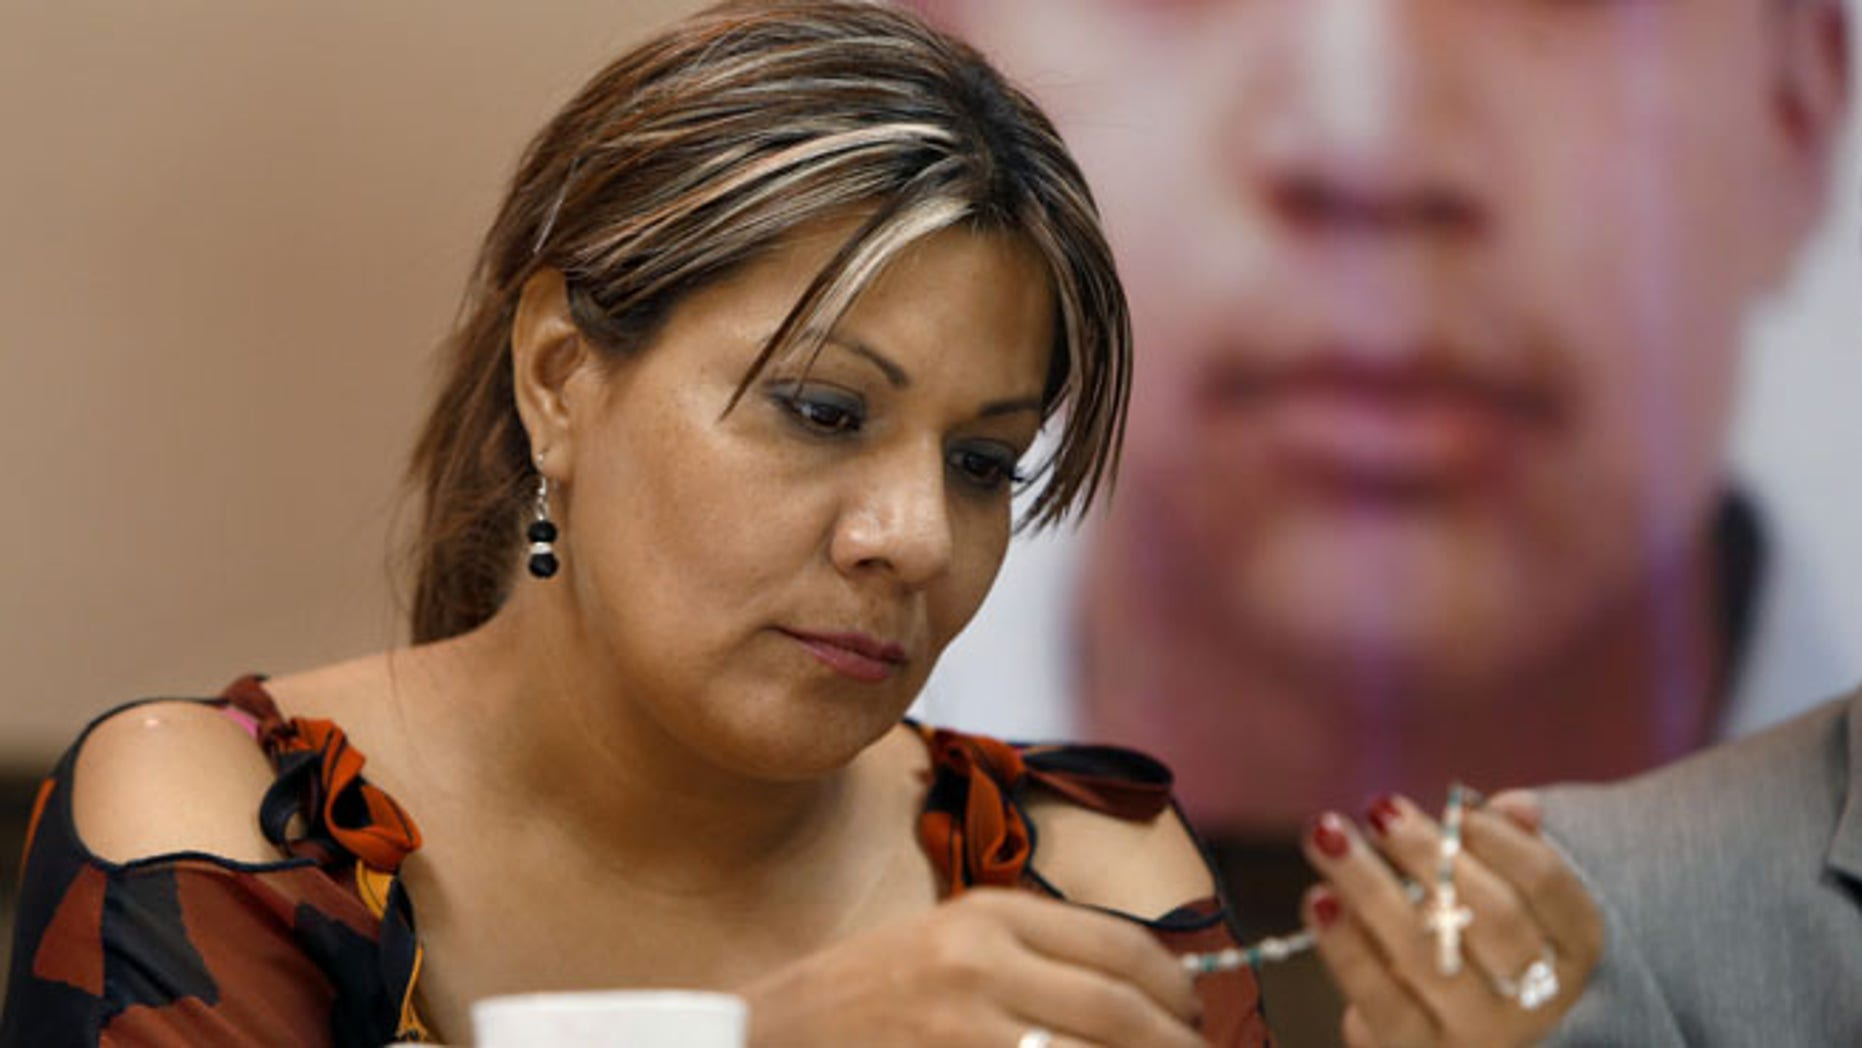 July 29, 2014: Araceli Rodriguez handles a rosary that belonged to her son Jose Antonio Elena Rodriguez, pictured behind her, who was shot and killed by a U.S. Border Patrol agent in October 2012.